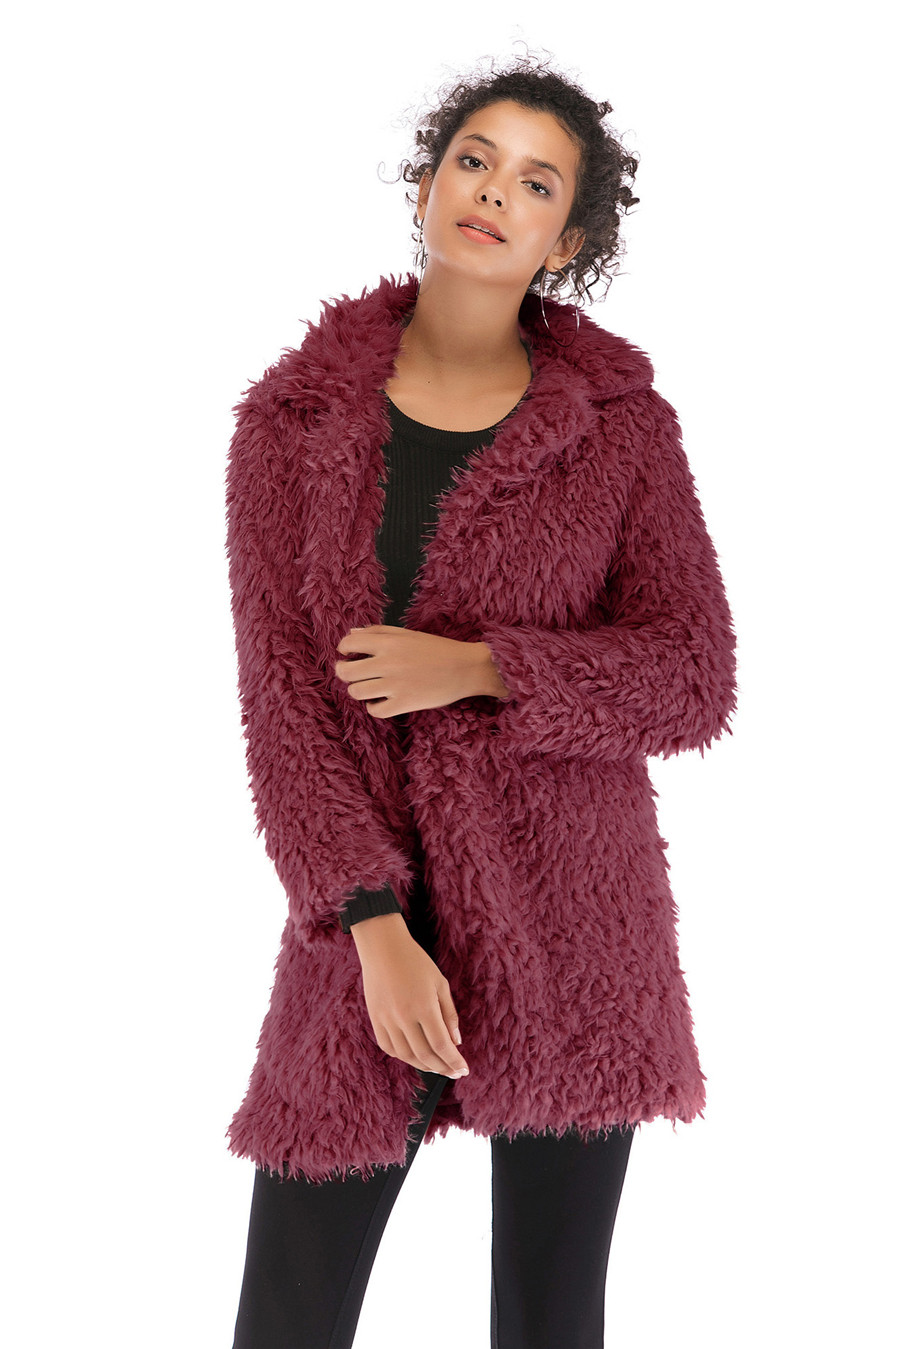 Gladiolus 2018 Women Autumn Winter Coat Turn-Down Collar Long Sleeve Covered Button Long Warm Shaggy Faux Fur Coat Women Jackets (14)